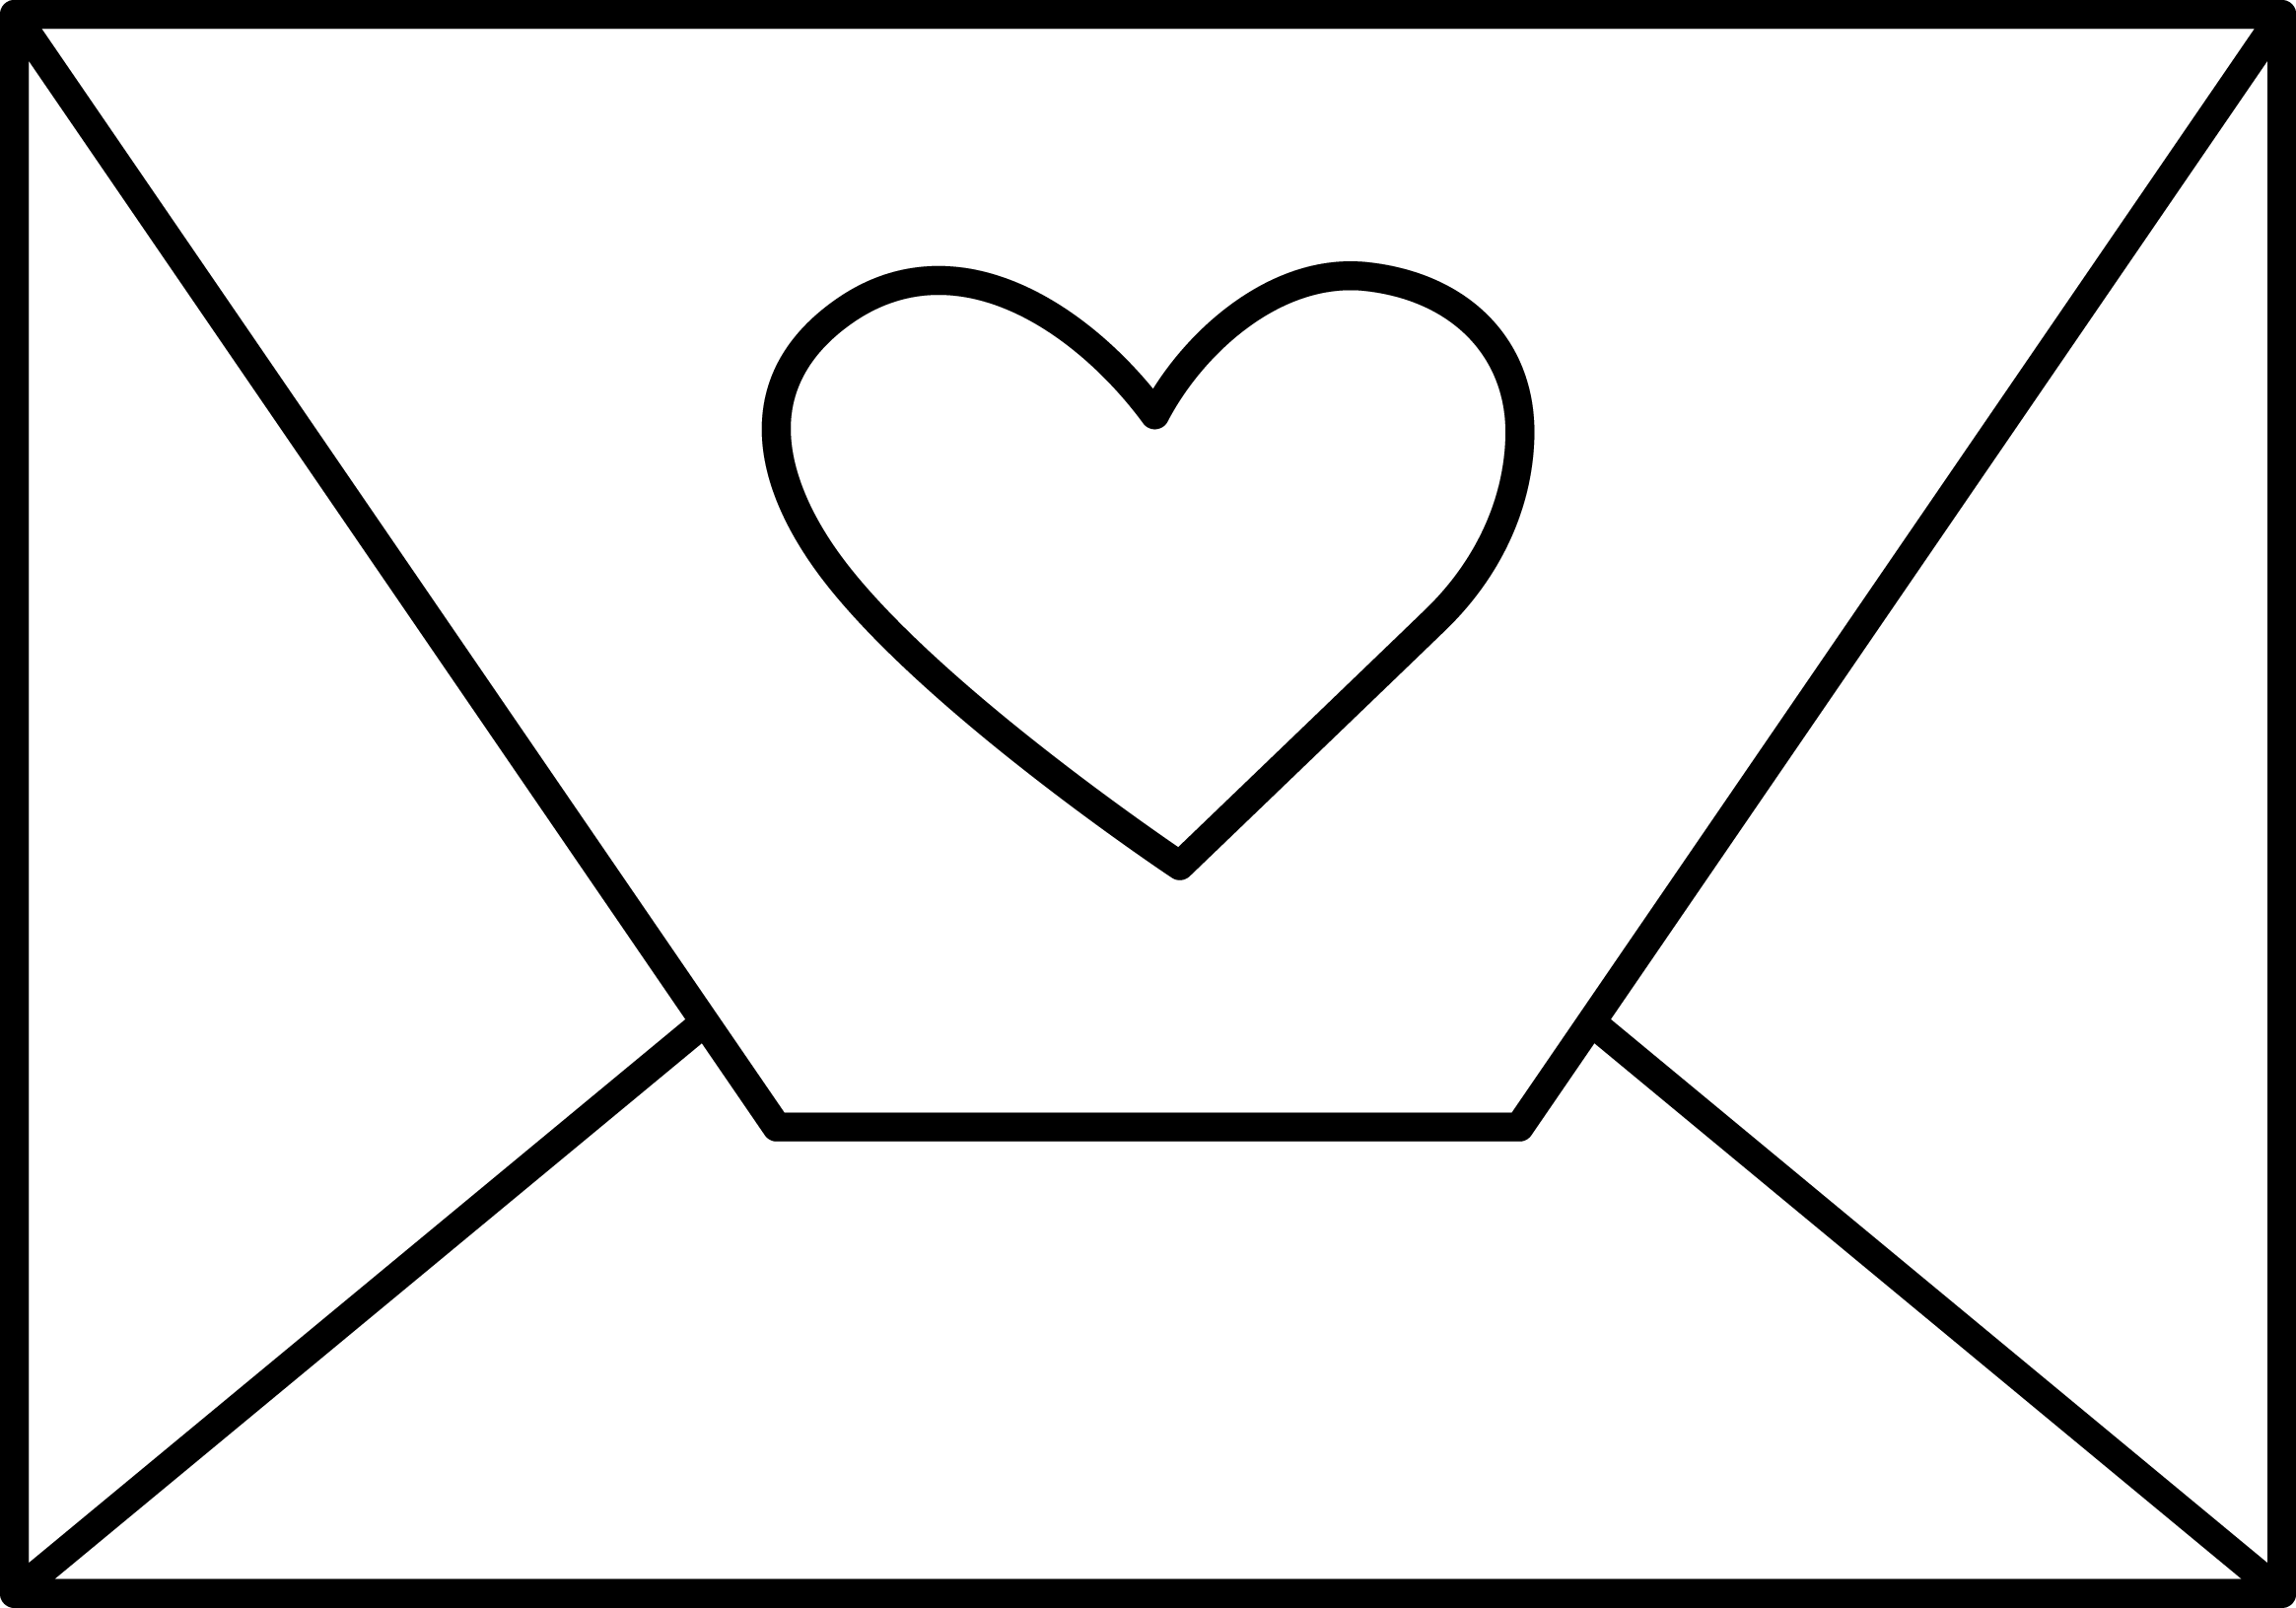 clipart black and white download Love letter